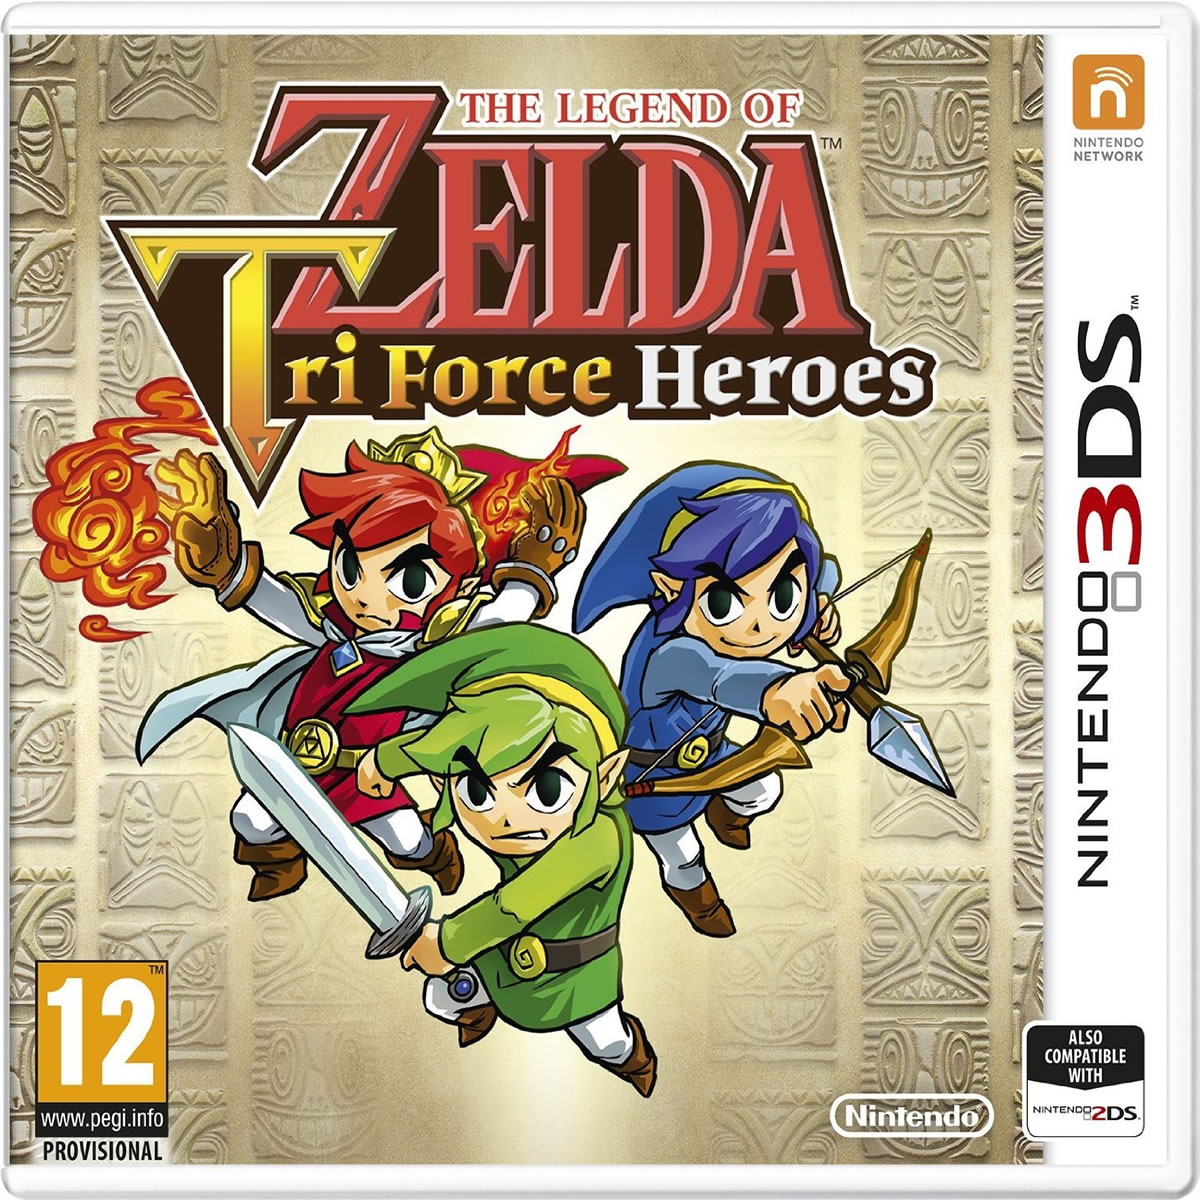 THE LEGEND OF ZELDA: TRI FORCE HEROES (3DS, DS)